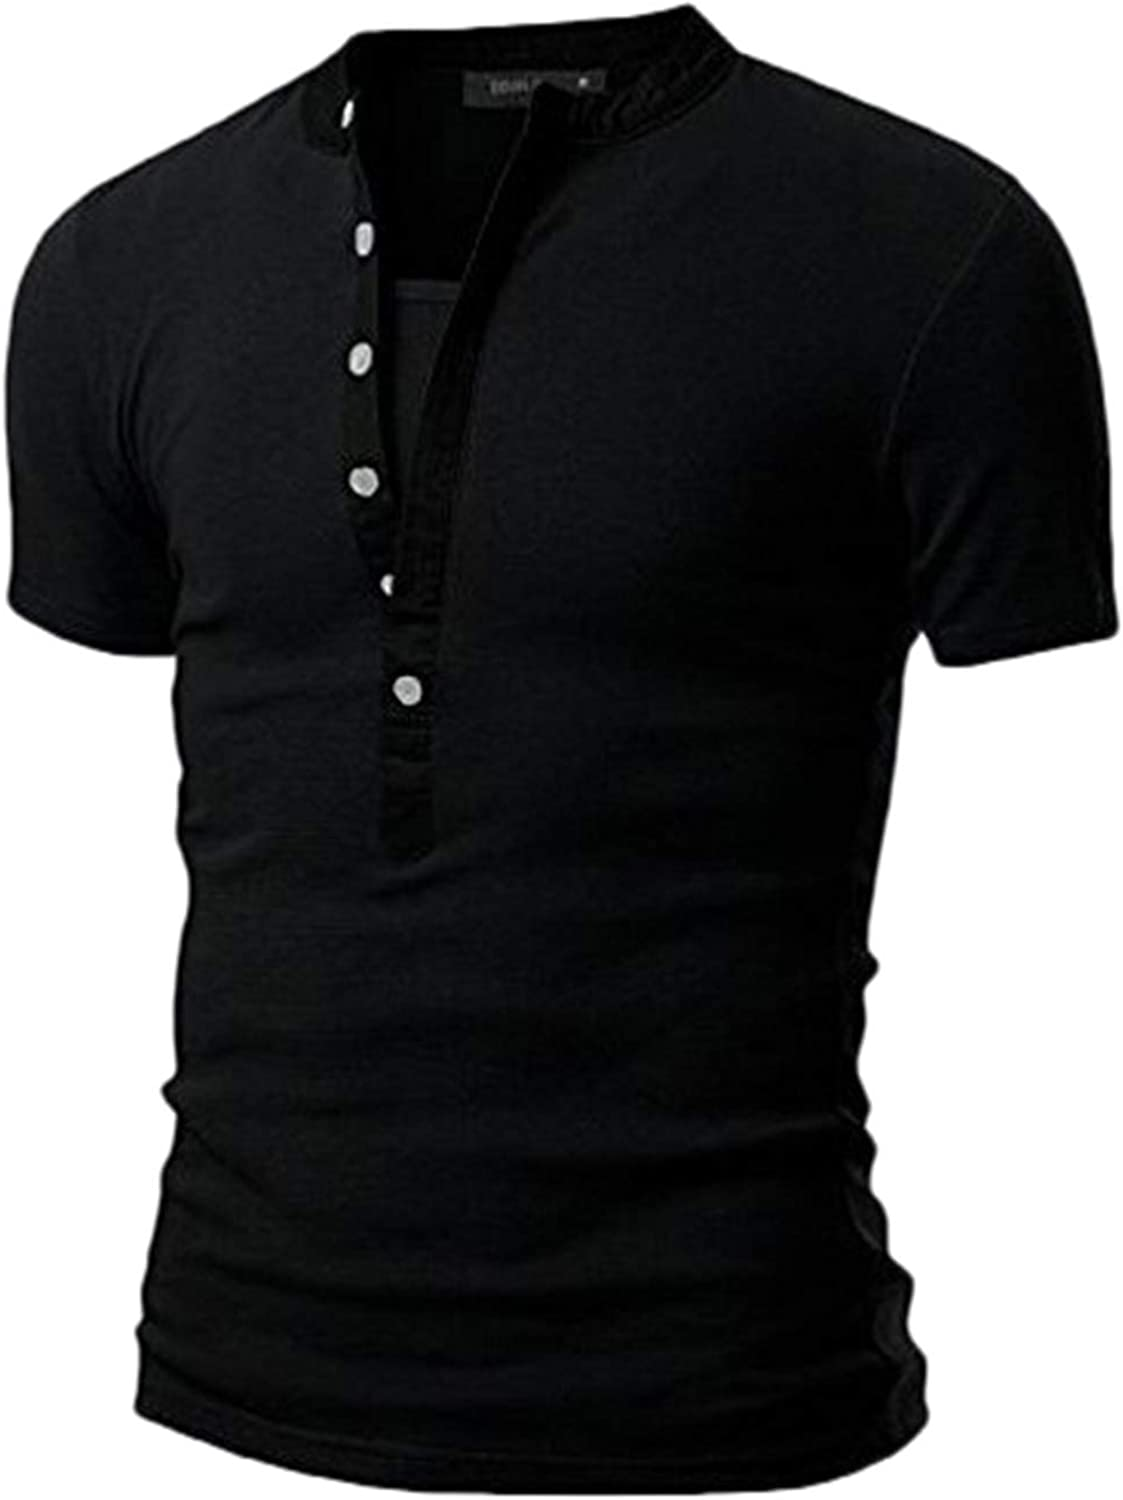 FUNEY Mens Shirts Lightweight Short Sleeve Beefy Henley T-Shirts Casual Soft Athletic Regular Fit Polo Shirts for Men